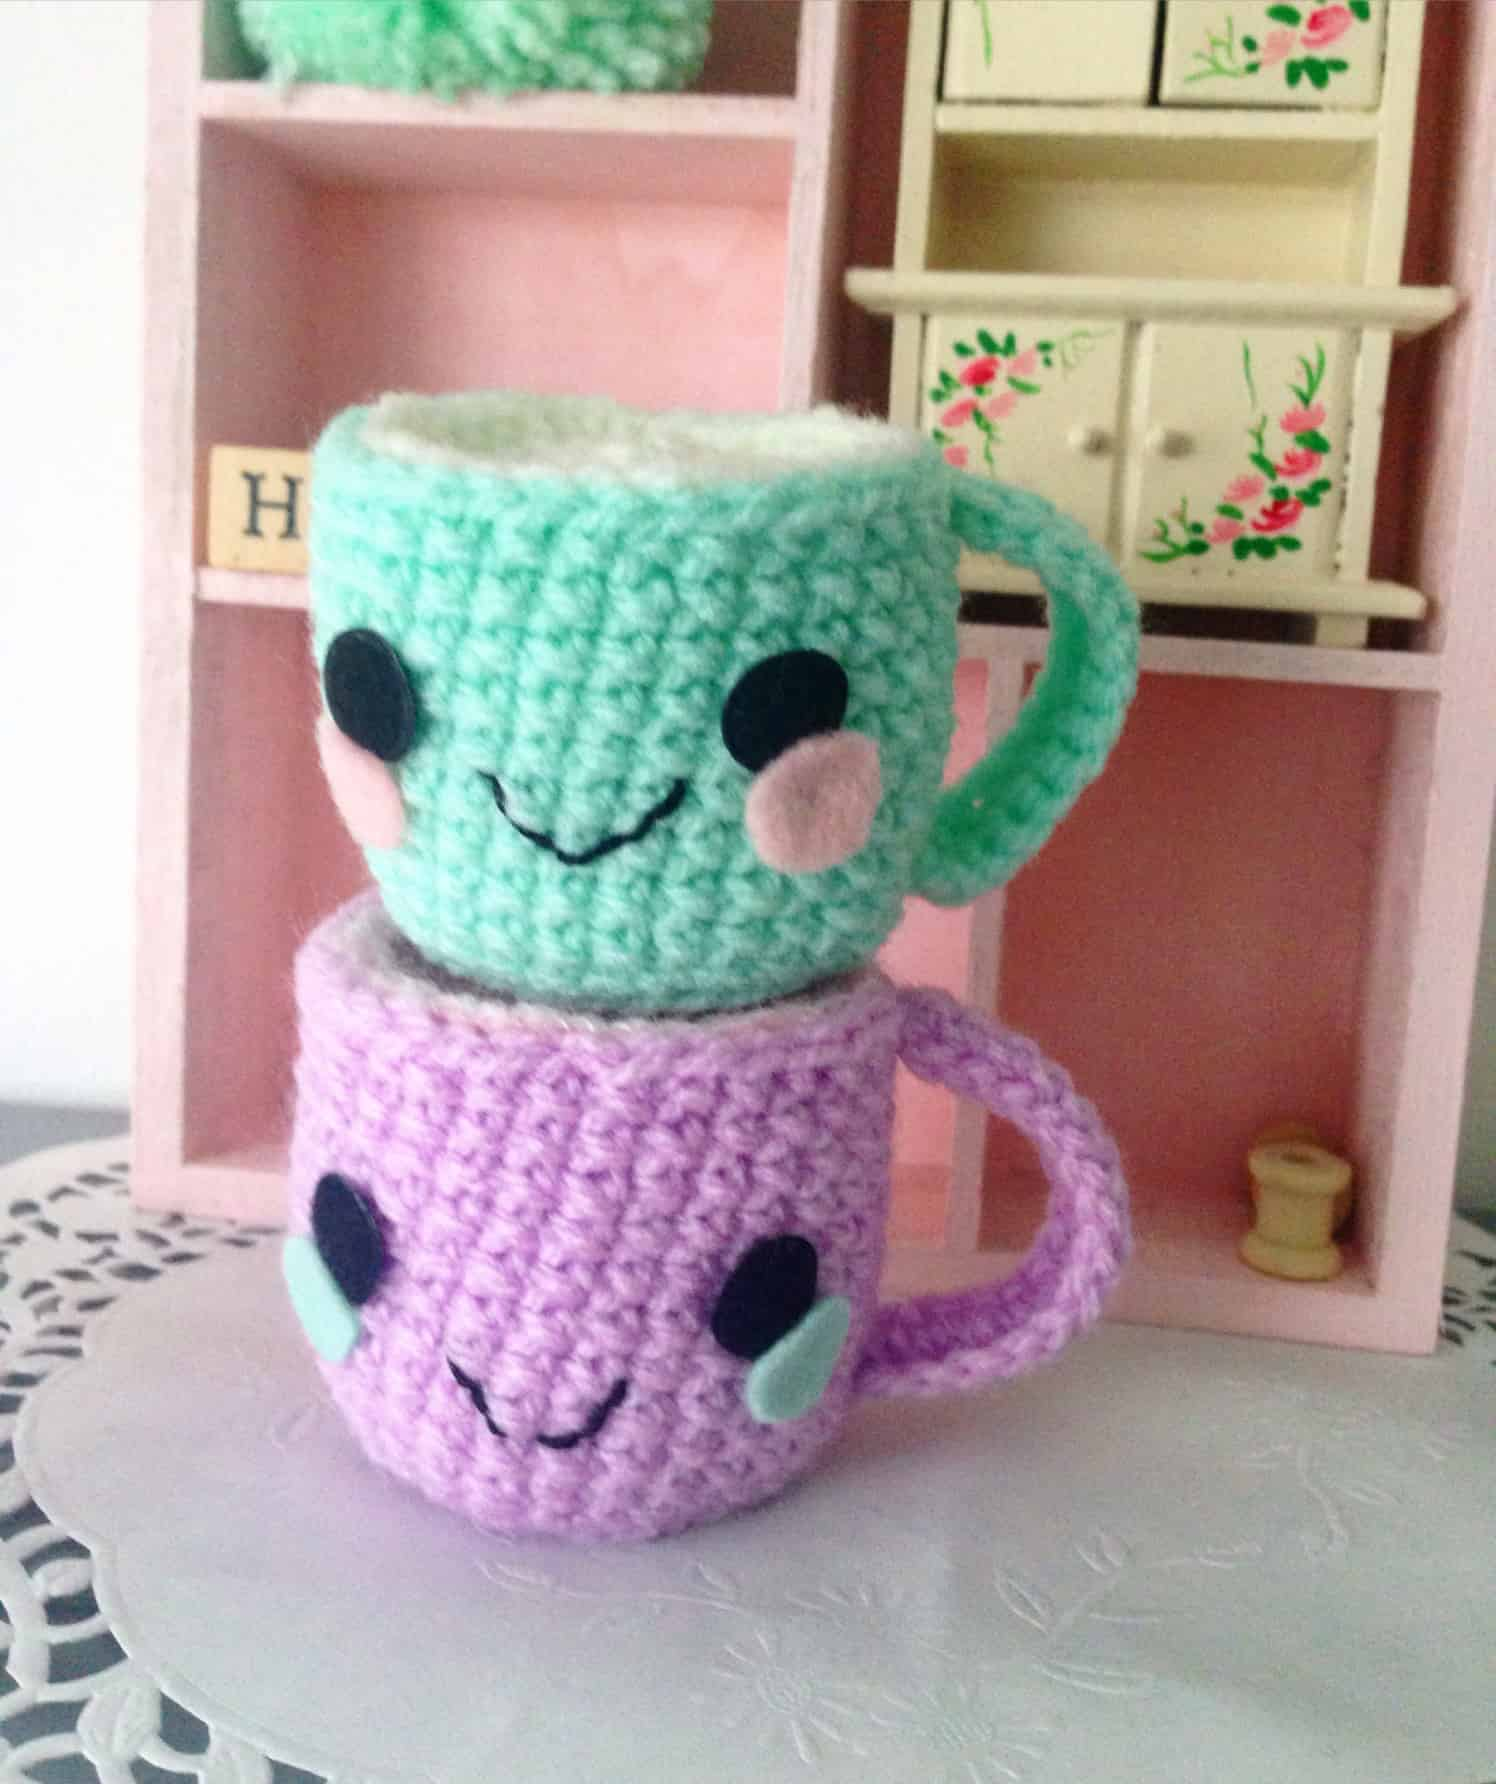 Kawaii crocheted mugs